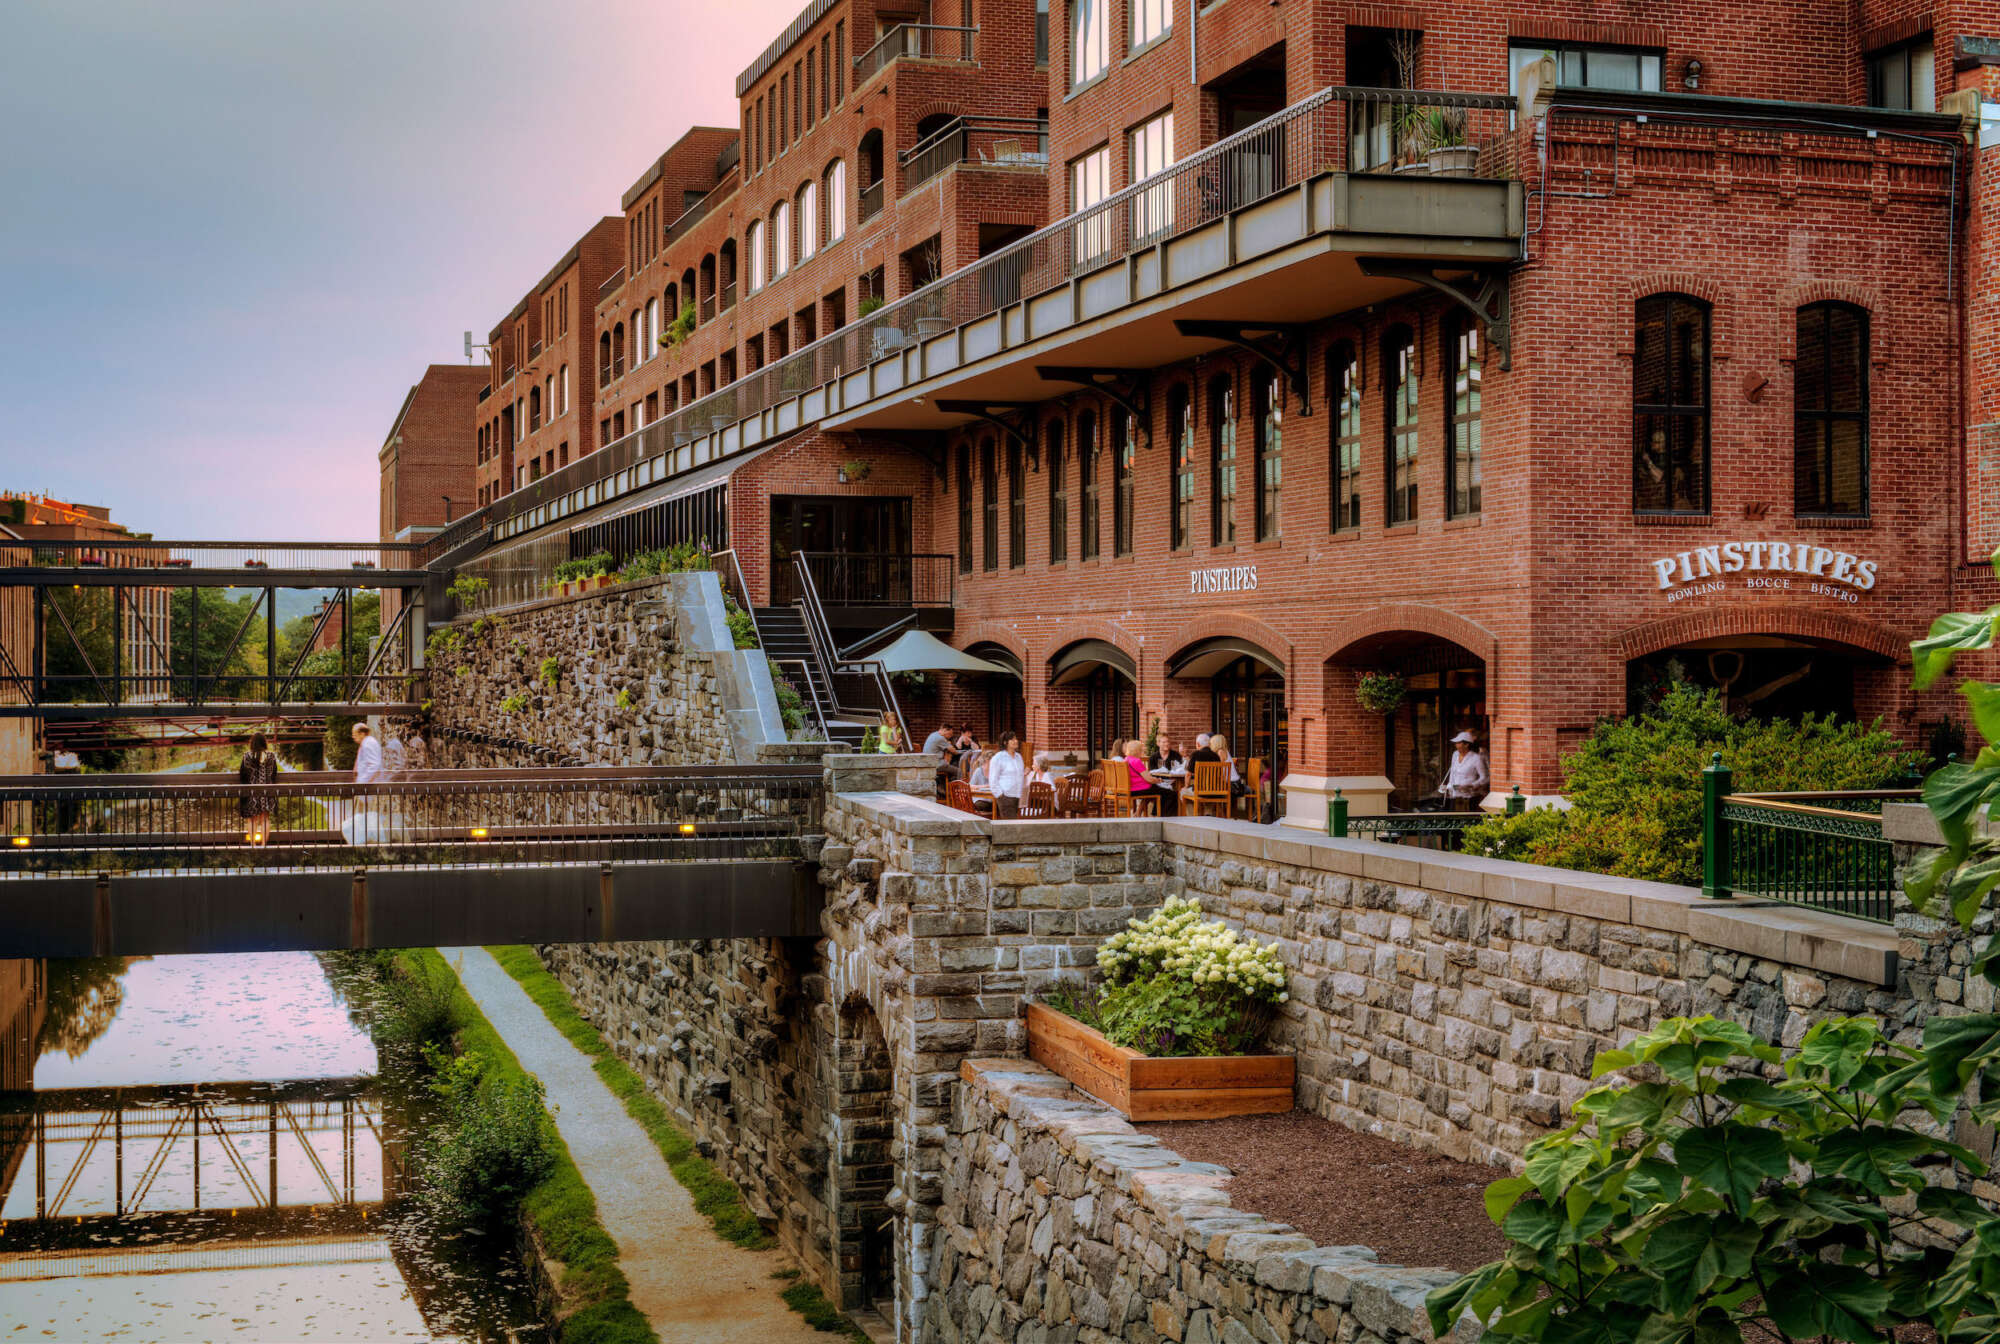 Georgetown Park retail shops exterior facing canal with bridges